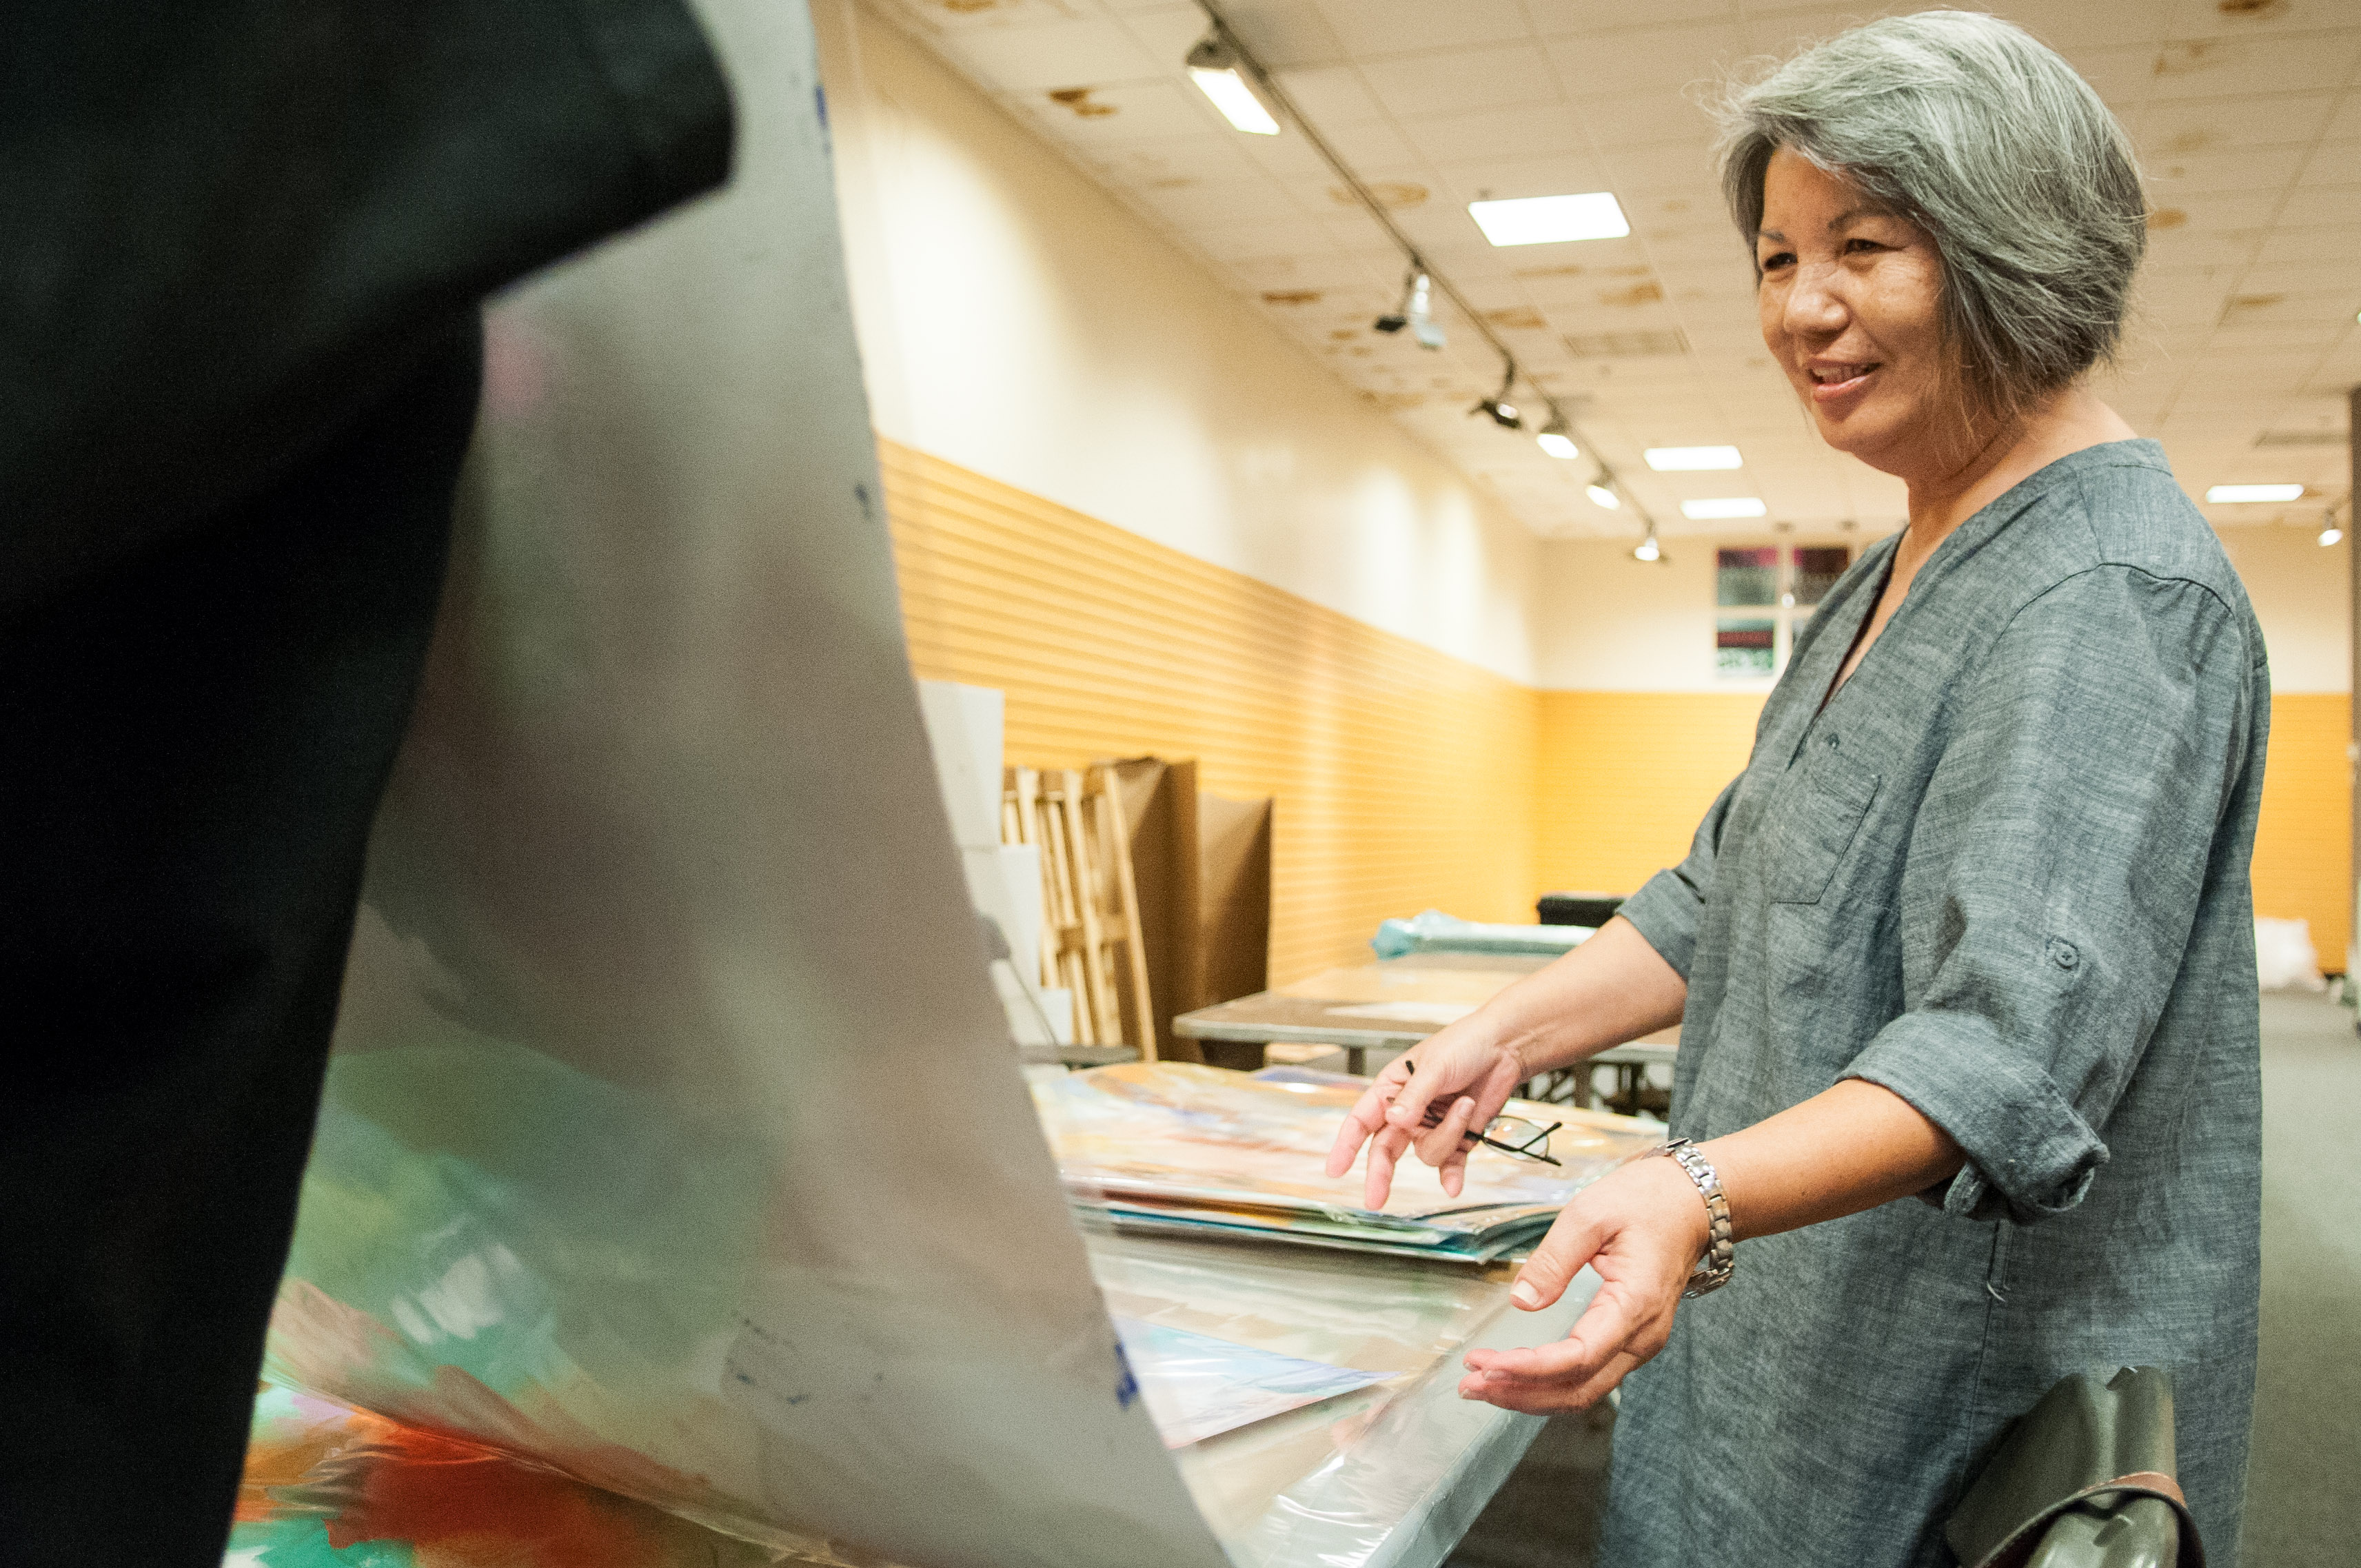 An artist looks at her piece of work to decide which will be mounted for the show. Photo by Skylar Isdale